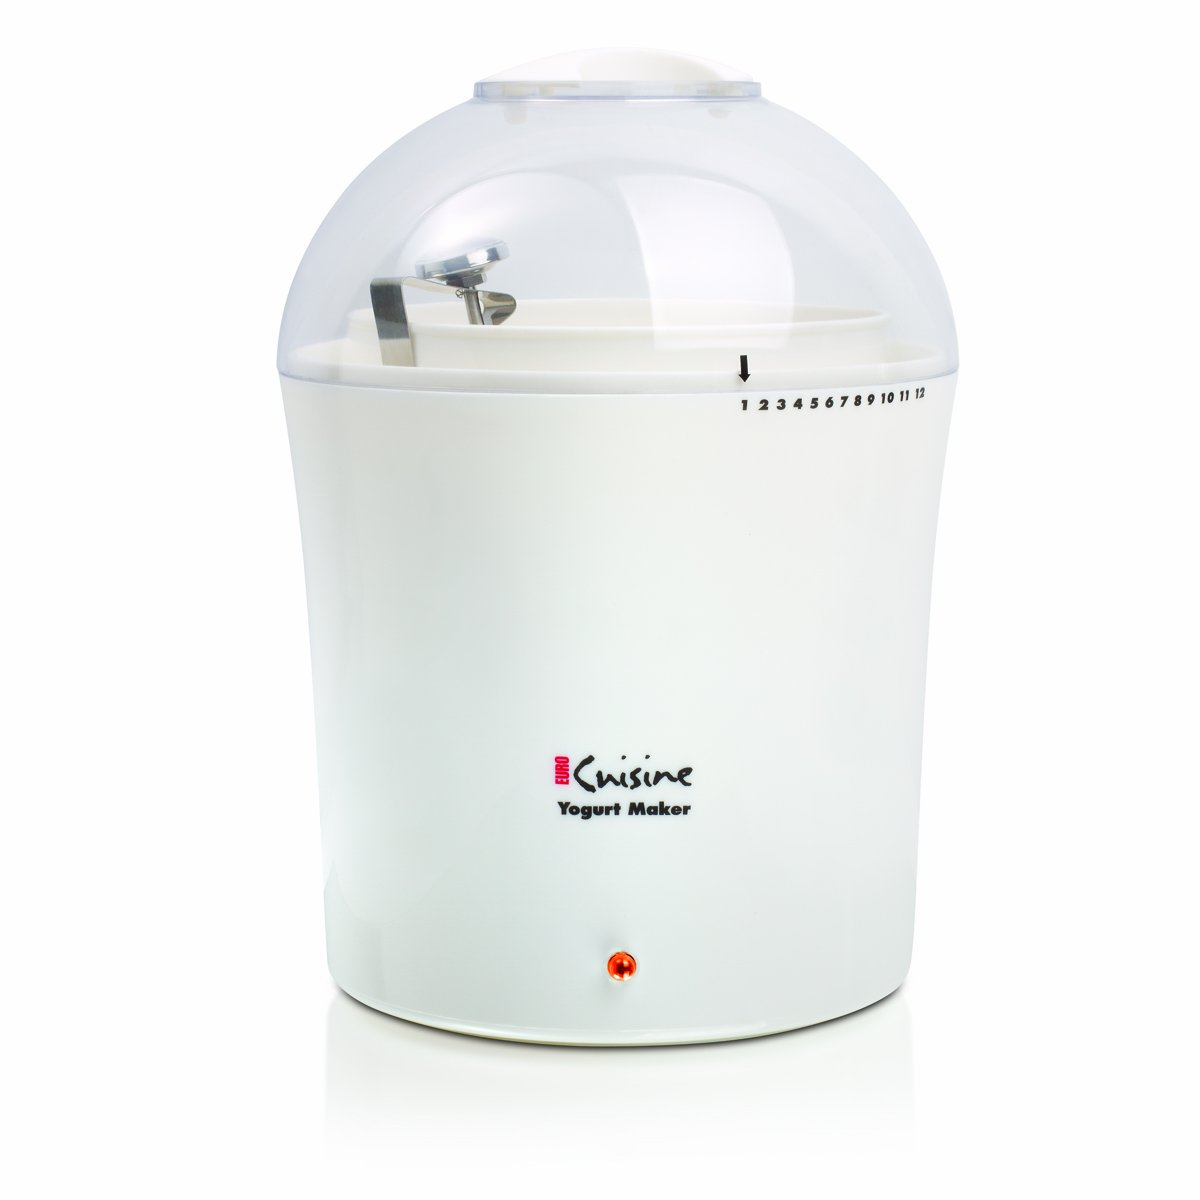 Euro Cuisine 2qt Yogurt Maker - Electric